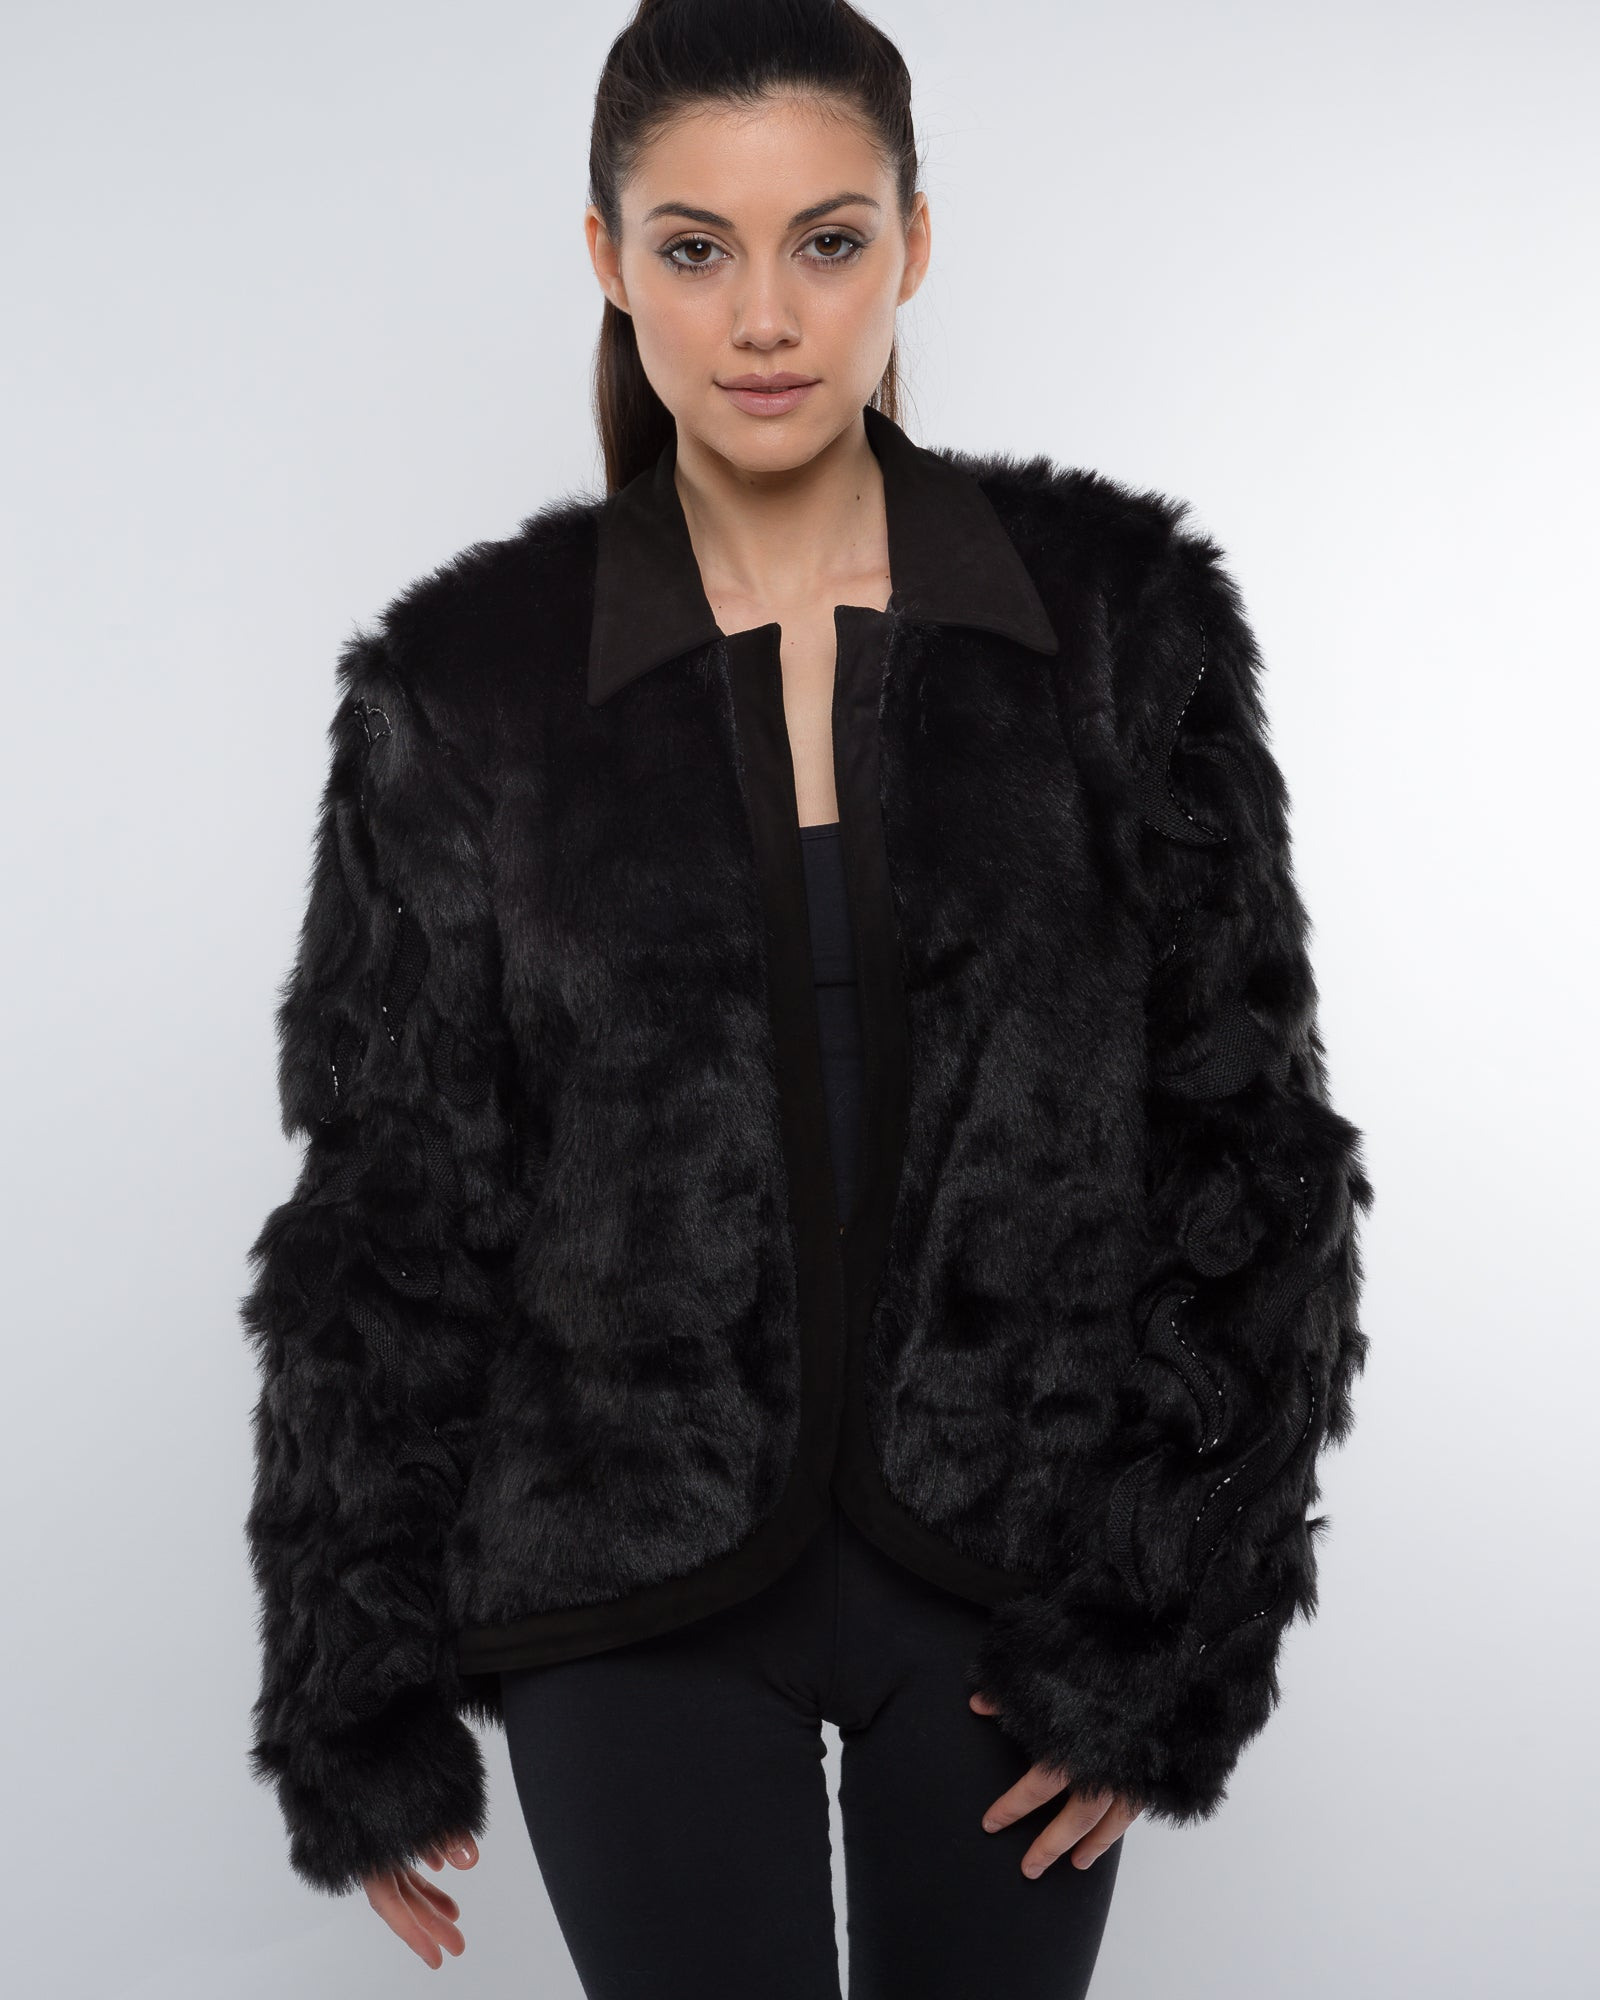 THE BLACK SLEEVE EMBROIDERED AND BEADED FAUX FUR JACKET